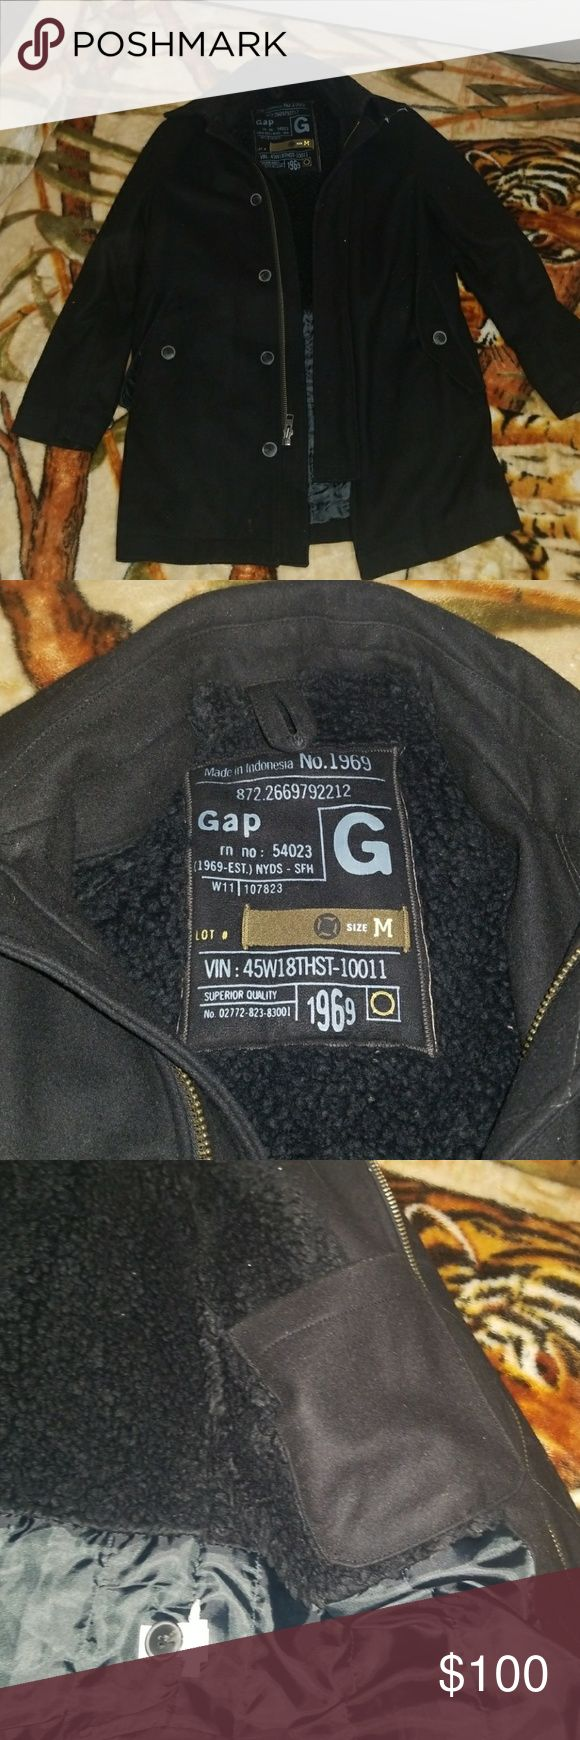 Gap Black long wool coat 80% wool 20% Nylon  Almost new, used only twice. Beautiful long coat by Gap. It is a slim fit. Looks very nice and very elegant. Very warm also. It is not super bulky like most wool coats but it is a bit heavy. Any questions please ask. GAP Jackets & Coats Trench Coats